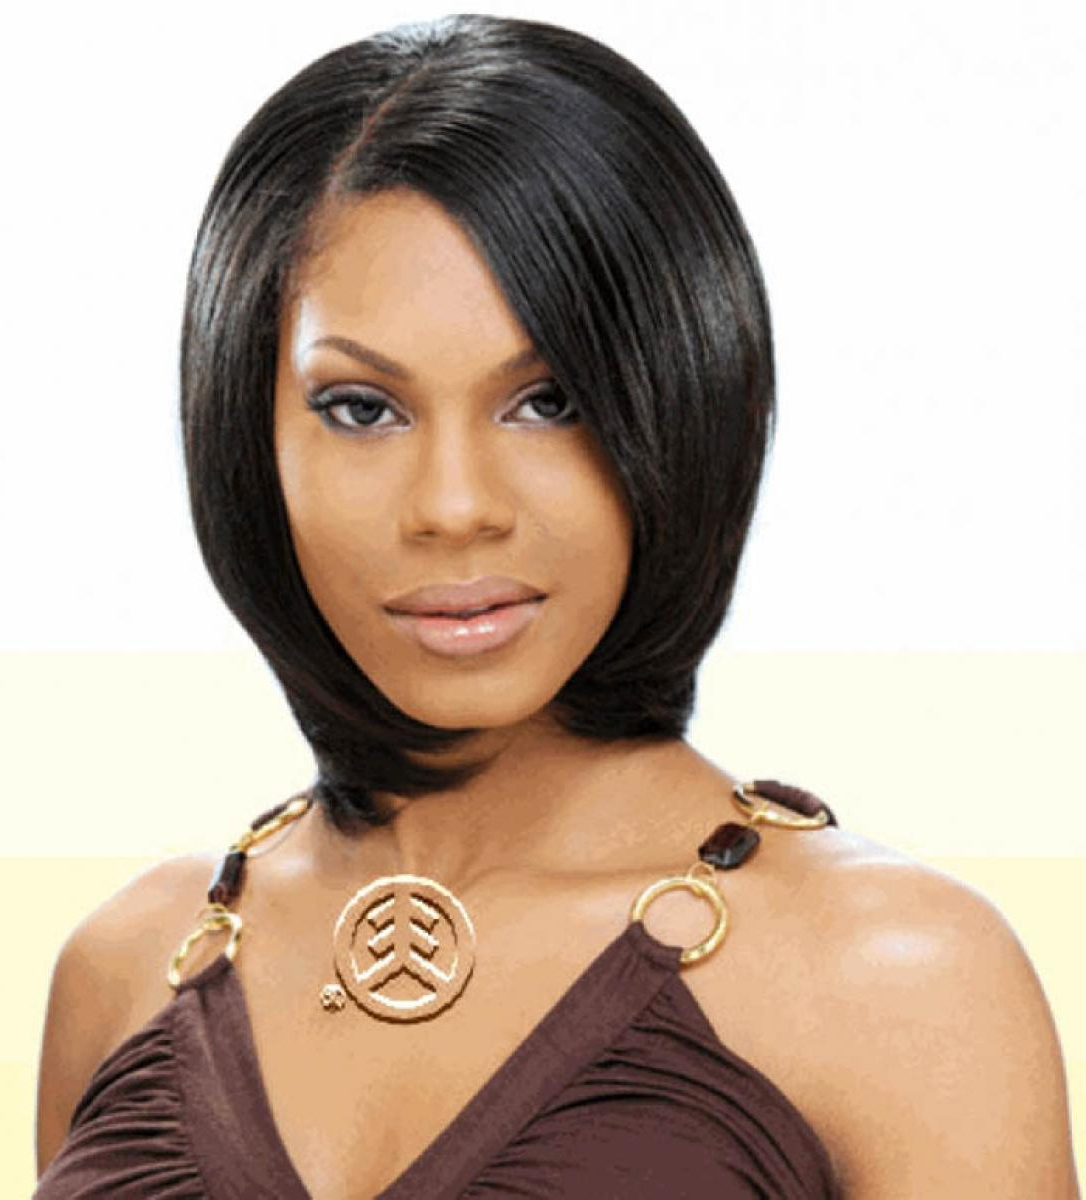 99 African American Short Weave Hairstyles Fresh Weave Hair Cuts With Short Weaves For Oval Faces (View 3 of 25)